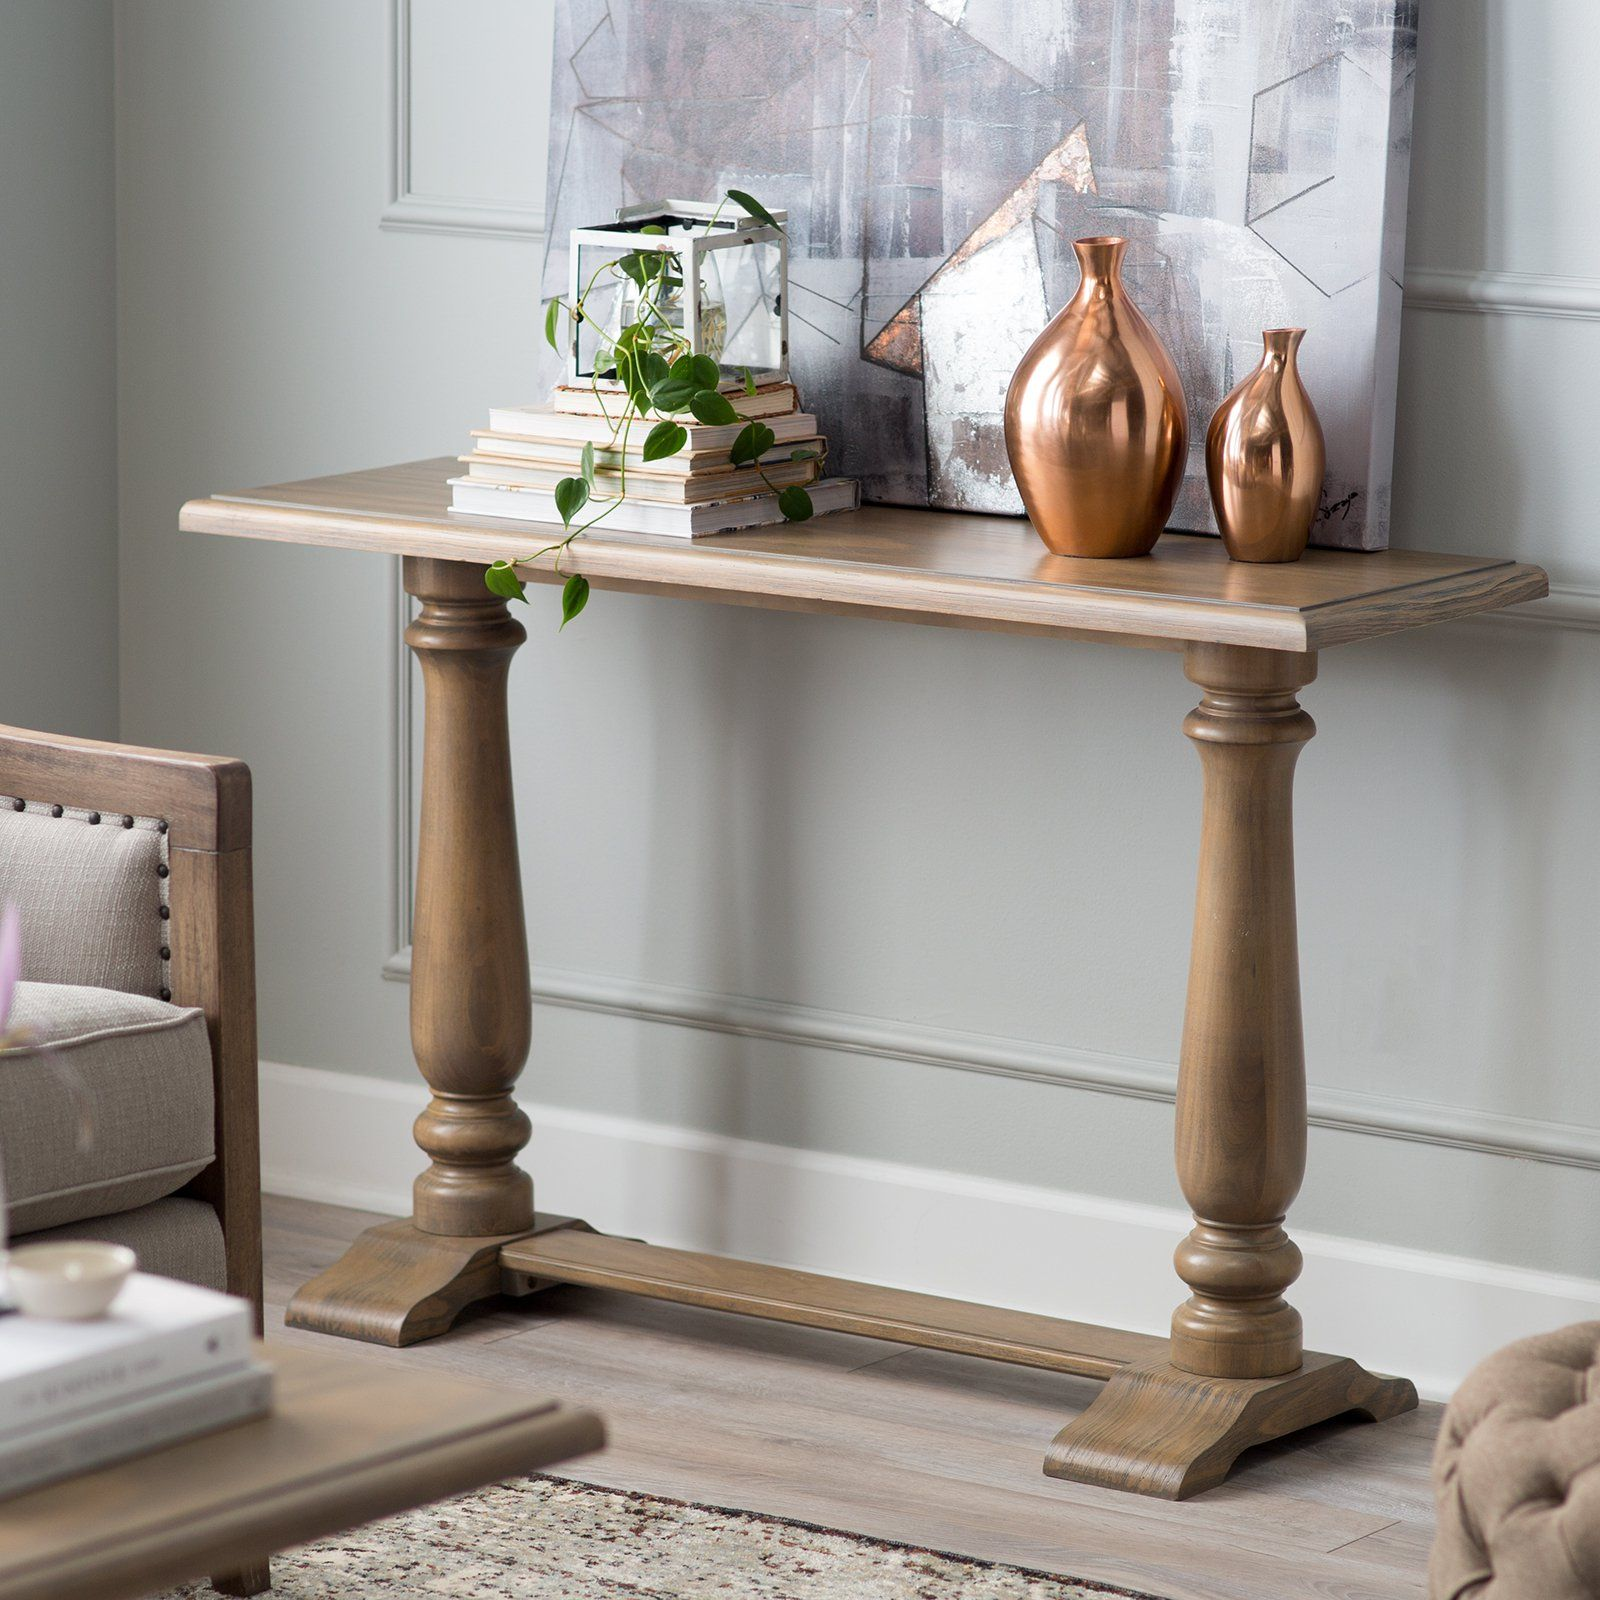 Belham living kennedy console table exquisite entryways 90283c207dd02789d0aba469665c7f19g geotapseo Choice Image